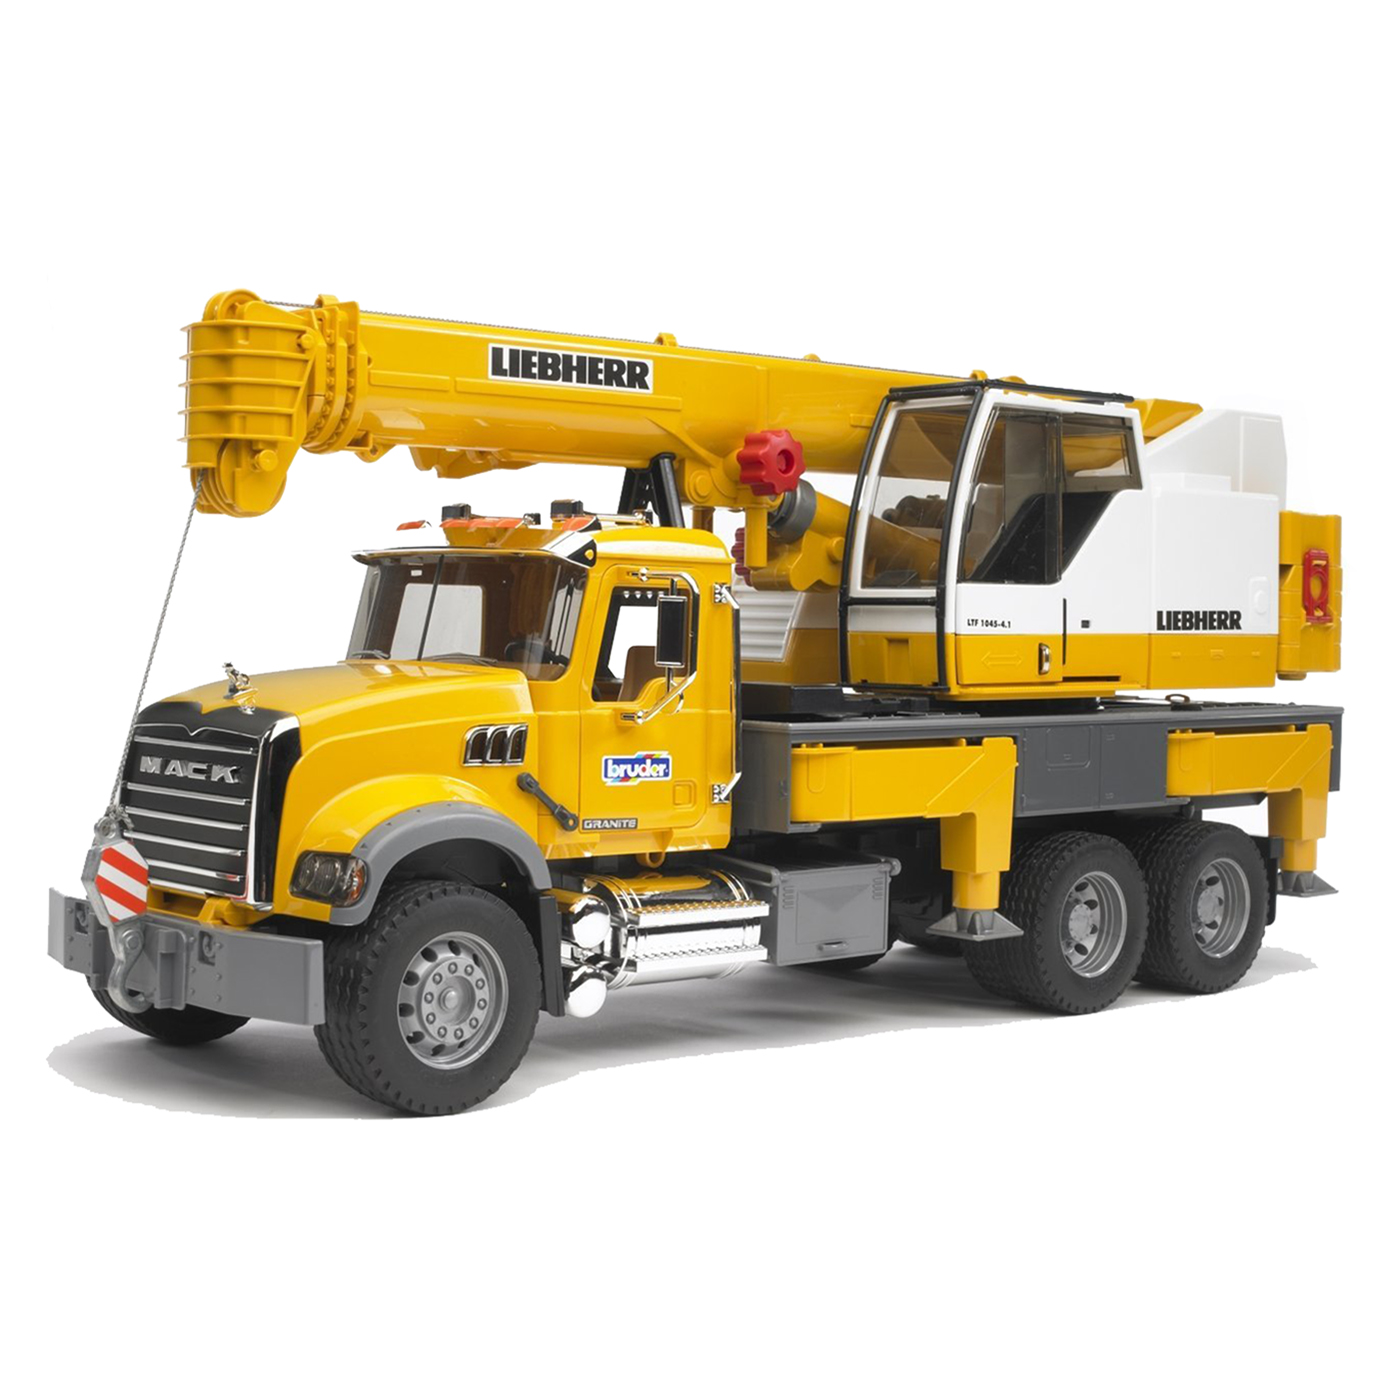 Bruder Toys Mack Granite Liebherr Scale 1:16 Functional Toy Crane Truck | 02818 by Bruder Toys